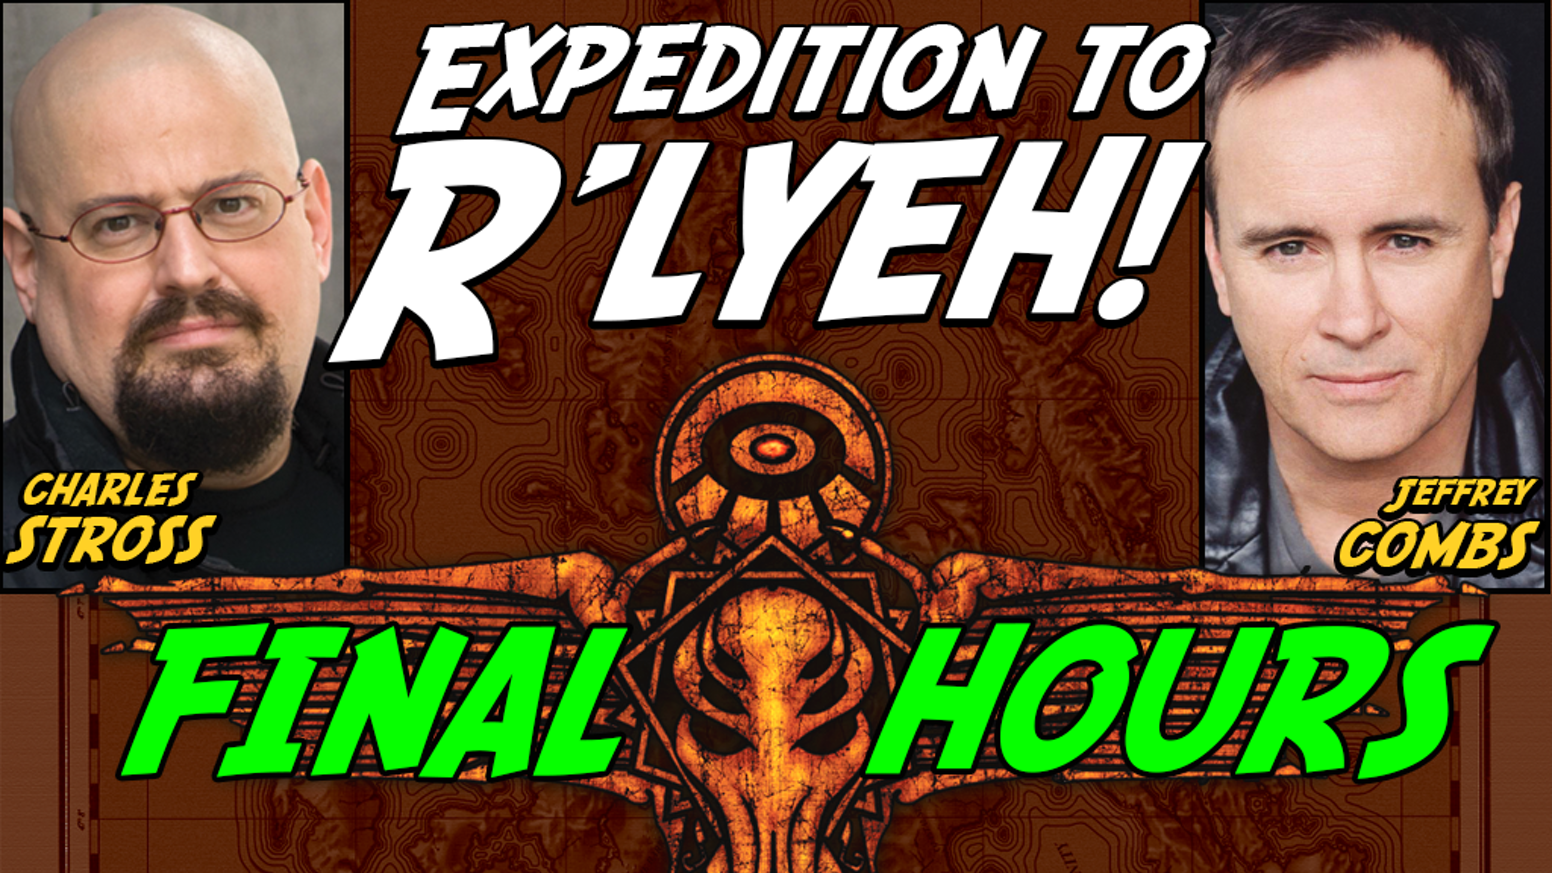 Head to R'lyeh to get unique Cthulhu & Miskatonic U artifacts for the 20th H.P. Lovecraft Film Fest & CthulhuCon - Portland OR, Oct 2-4